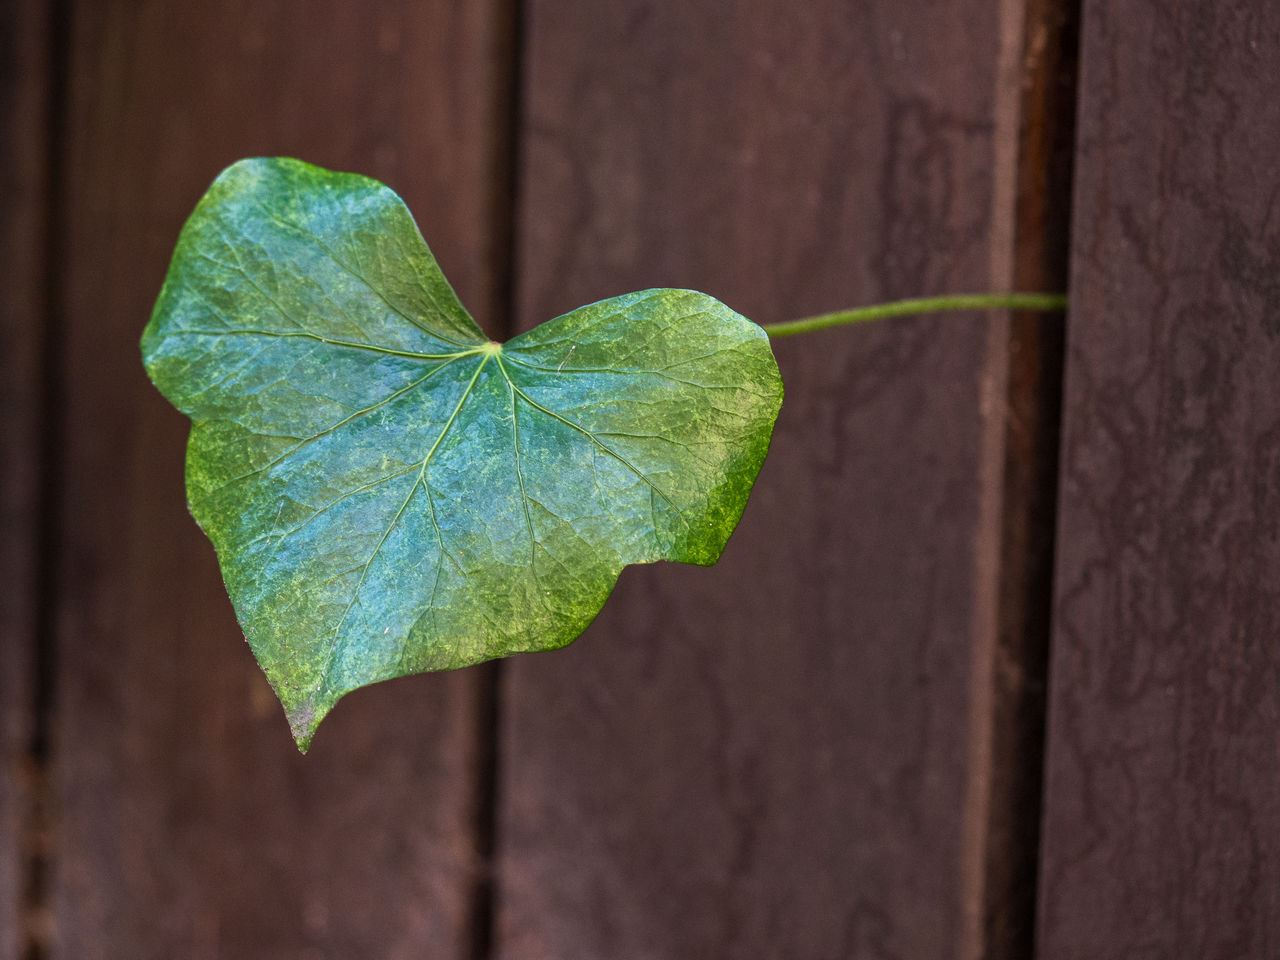 leaf, green color, close-up, plant, growth, no people, nature, focus on foreground, day, fragility, outdoors, freshness, beauty in nature